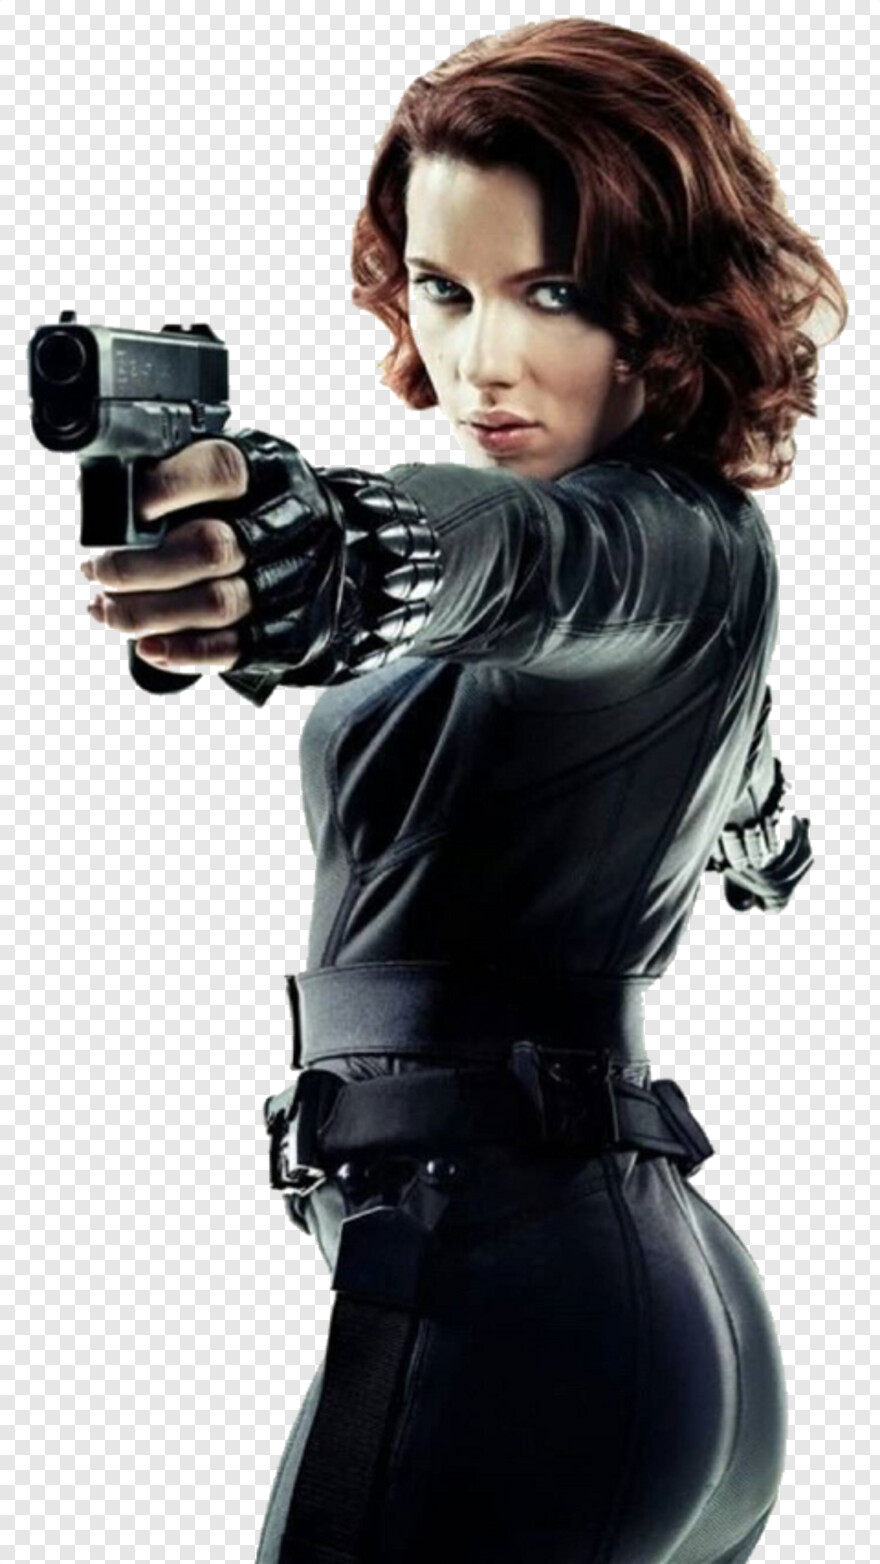 Scarlet Witch Avengers 2 Black Widow Scarlett Johansson Sexy Hd Png Download 480x853 8493441 Png Image Pngjoy